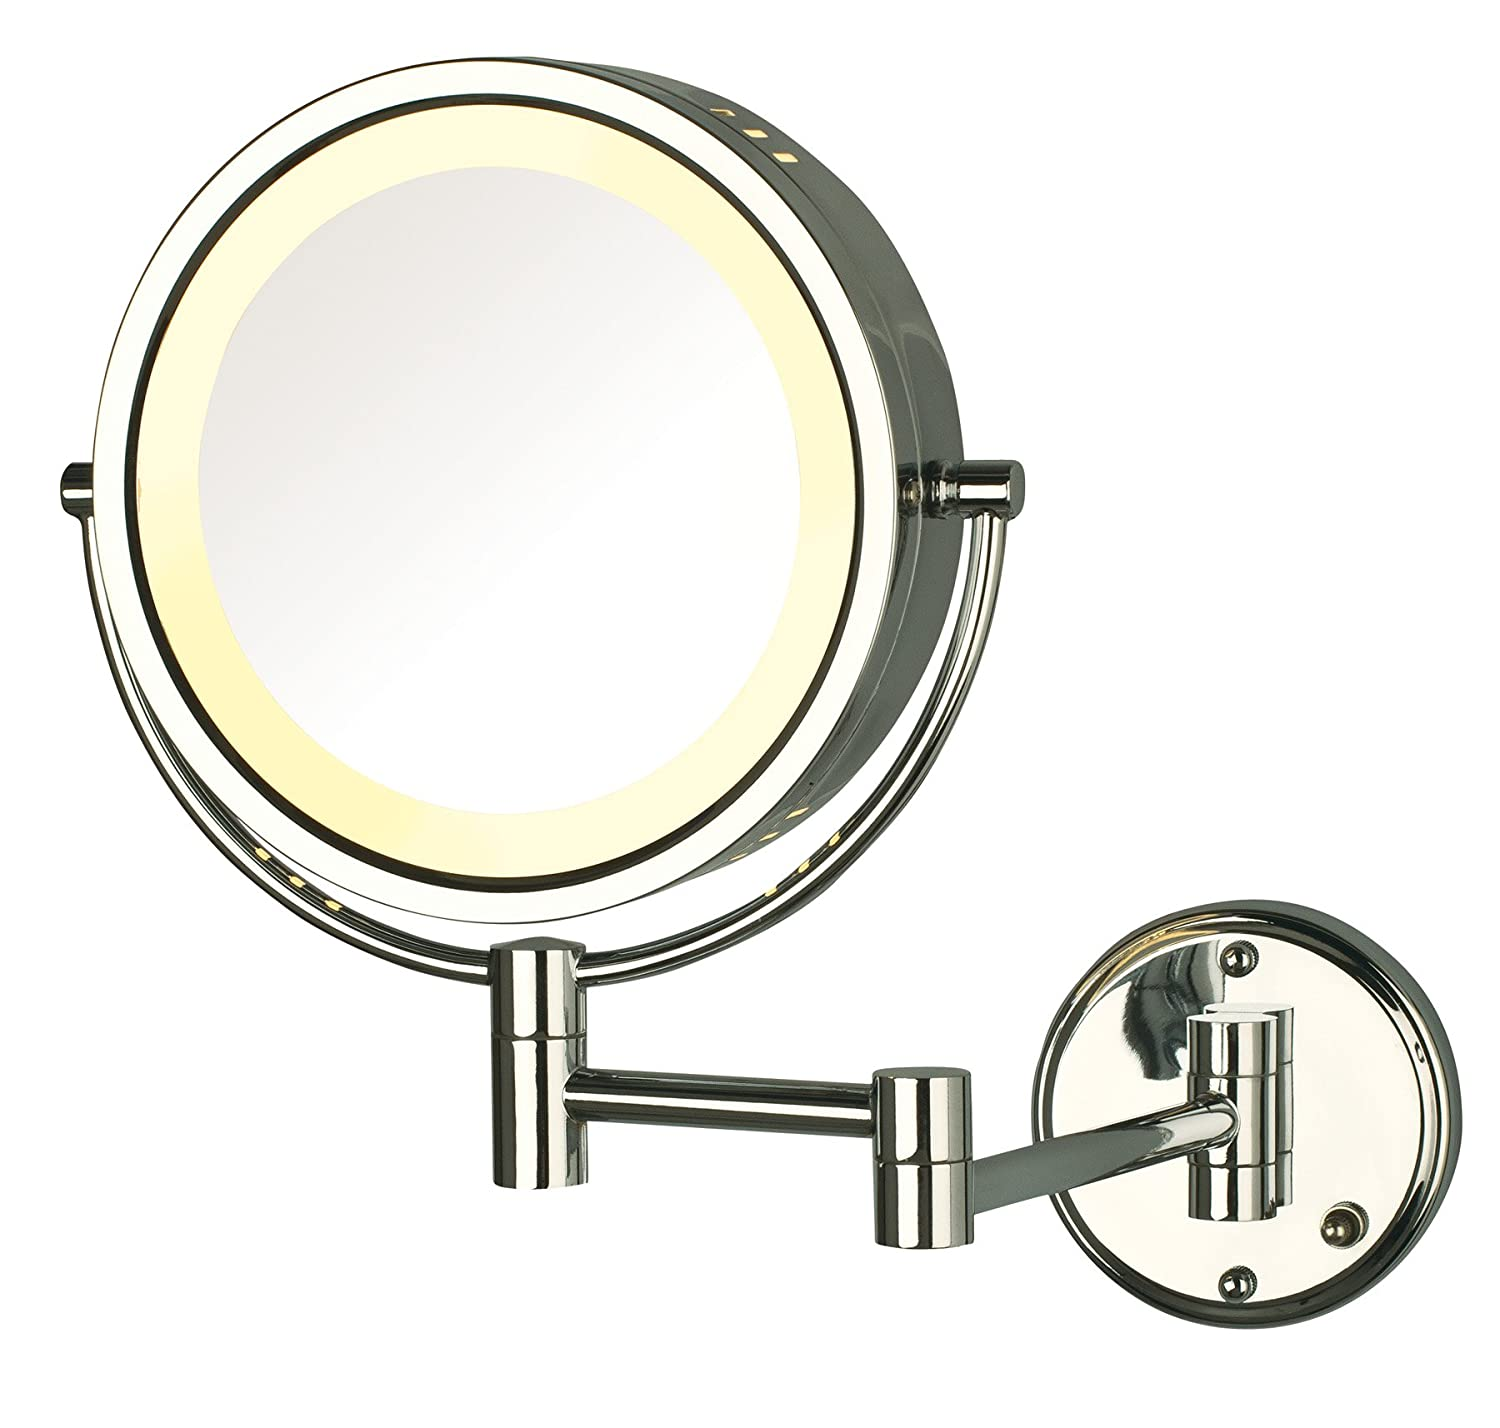 Amazon.com : Jerdon HL75CD 8.5-Inch Lighted Direct Wire Wall Mount Makeup  Mirror with 8x Magnification, Chrome Finish : Personal Makeup Mirrors :  BeautyAmazon.com